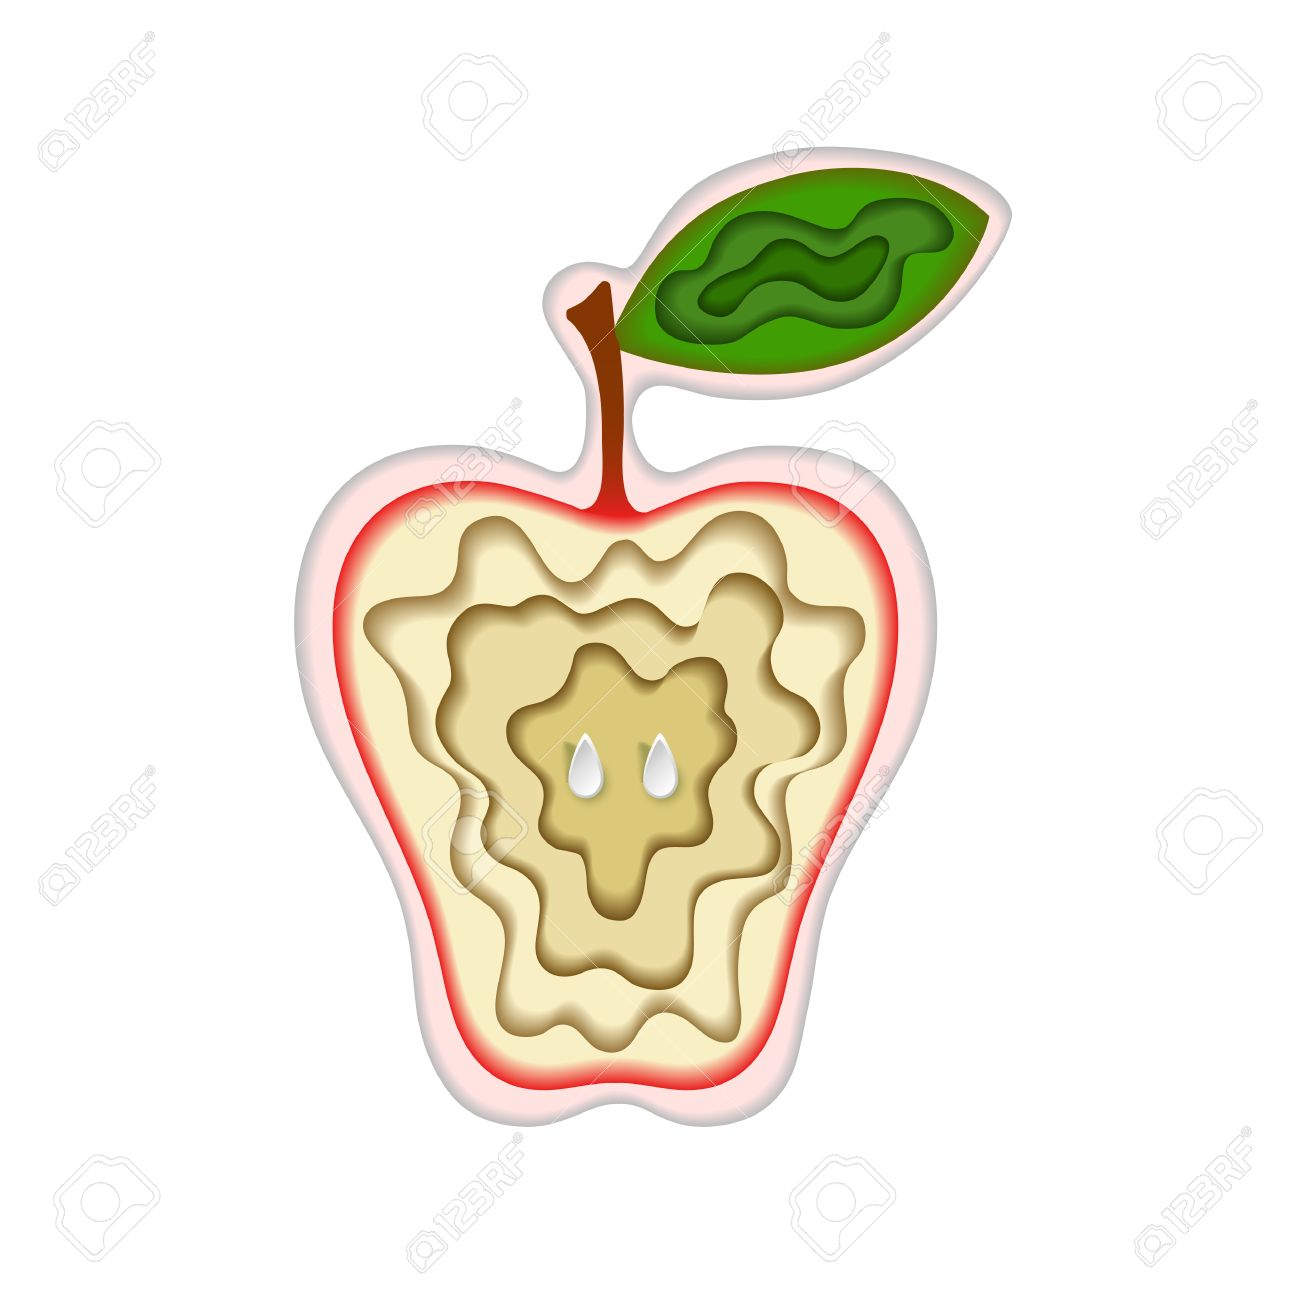 Paper Art Carving With Fruit Layered Cut Out Apple Shape With